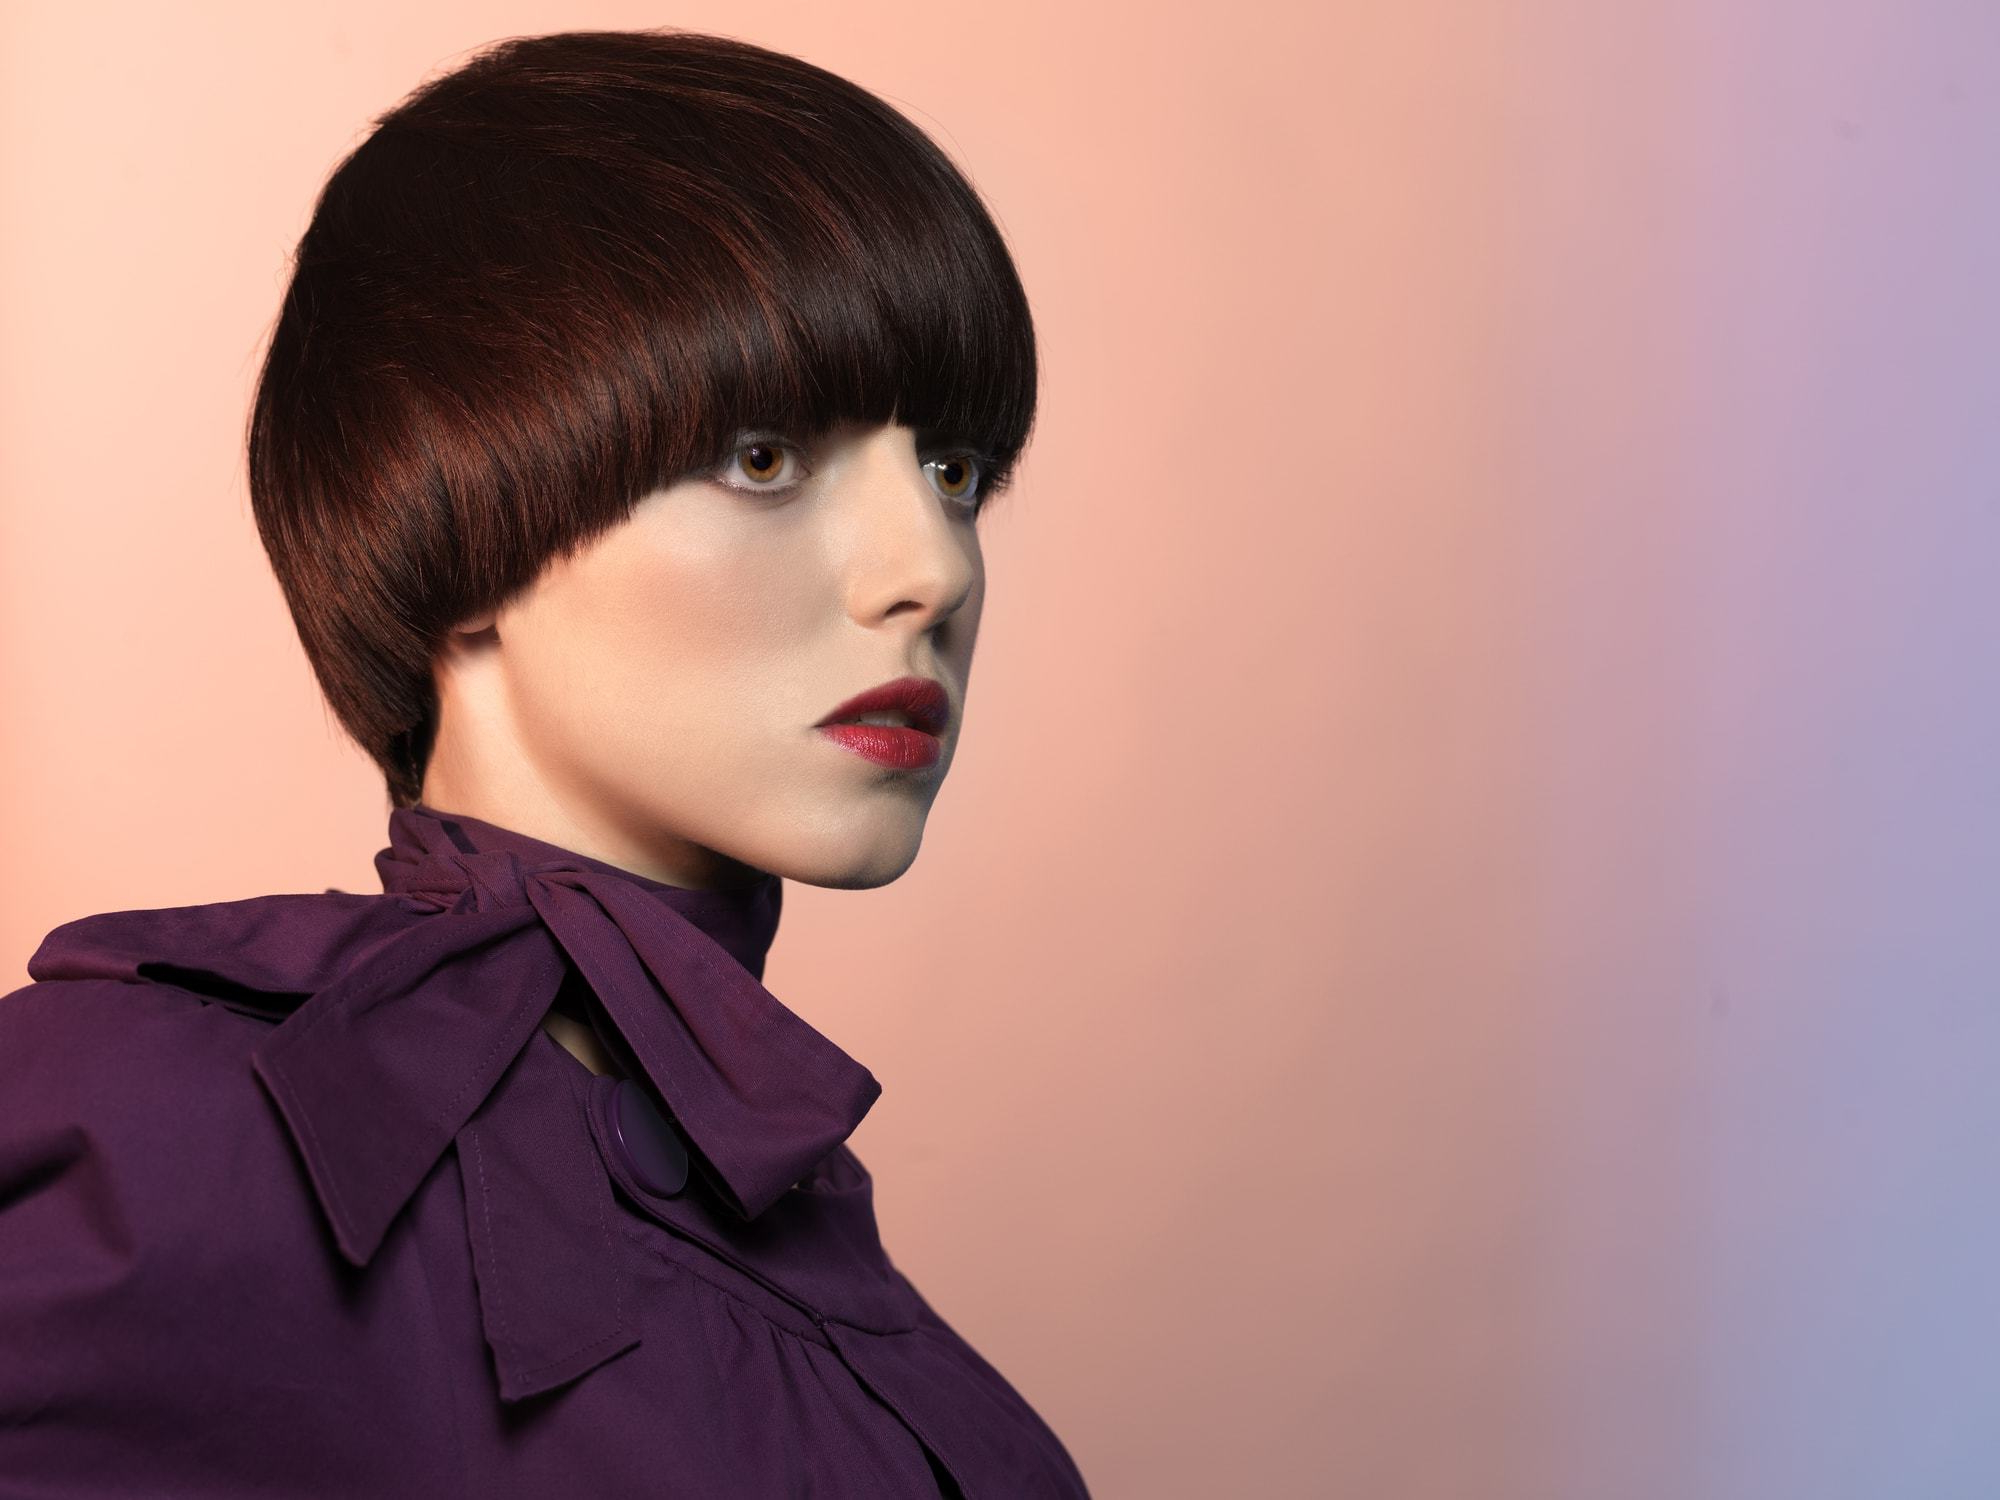 15 Short Haircuts For Oval Faces To Try Any Season For Short Haircuts For Oval Faces (View 10 of 25)